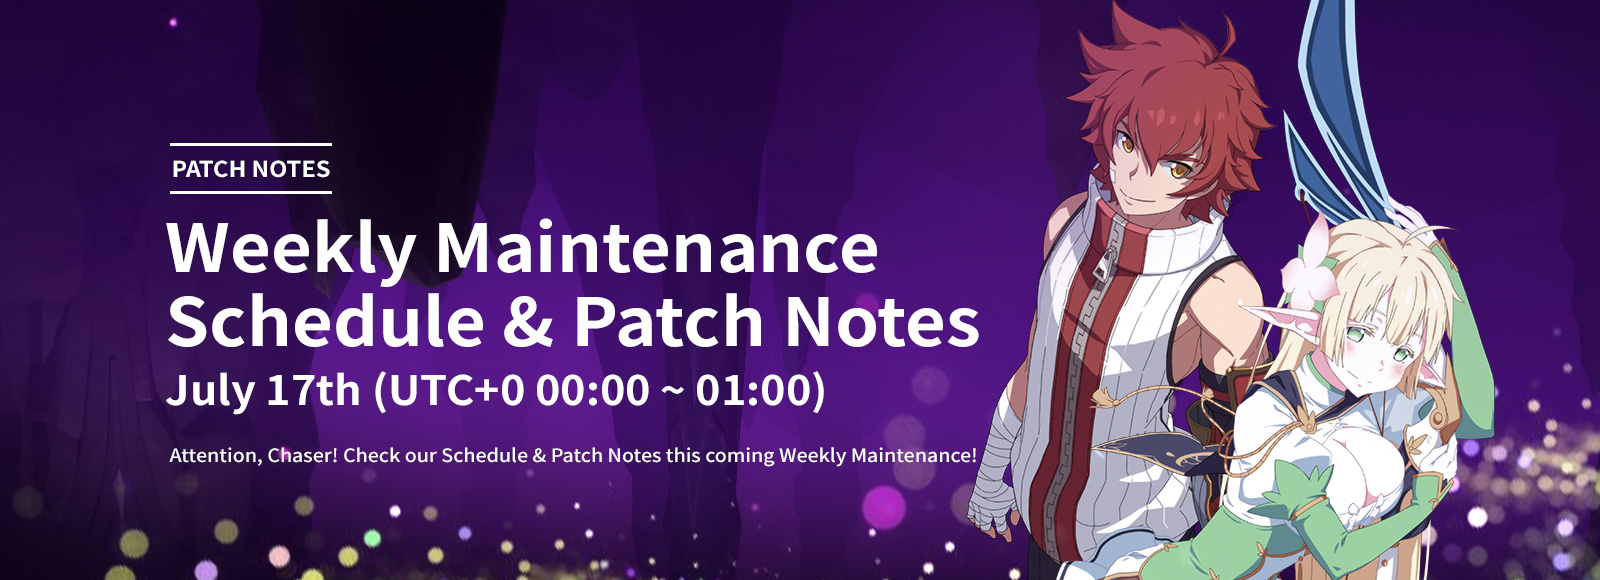 July 17th Weekly Maintenance Schedule & Patch Notes